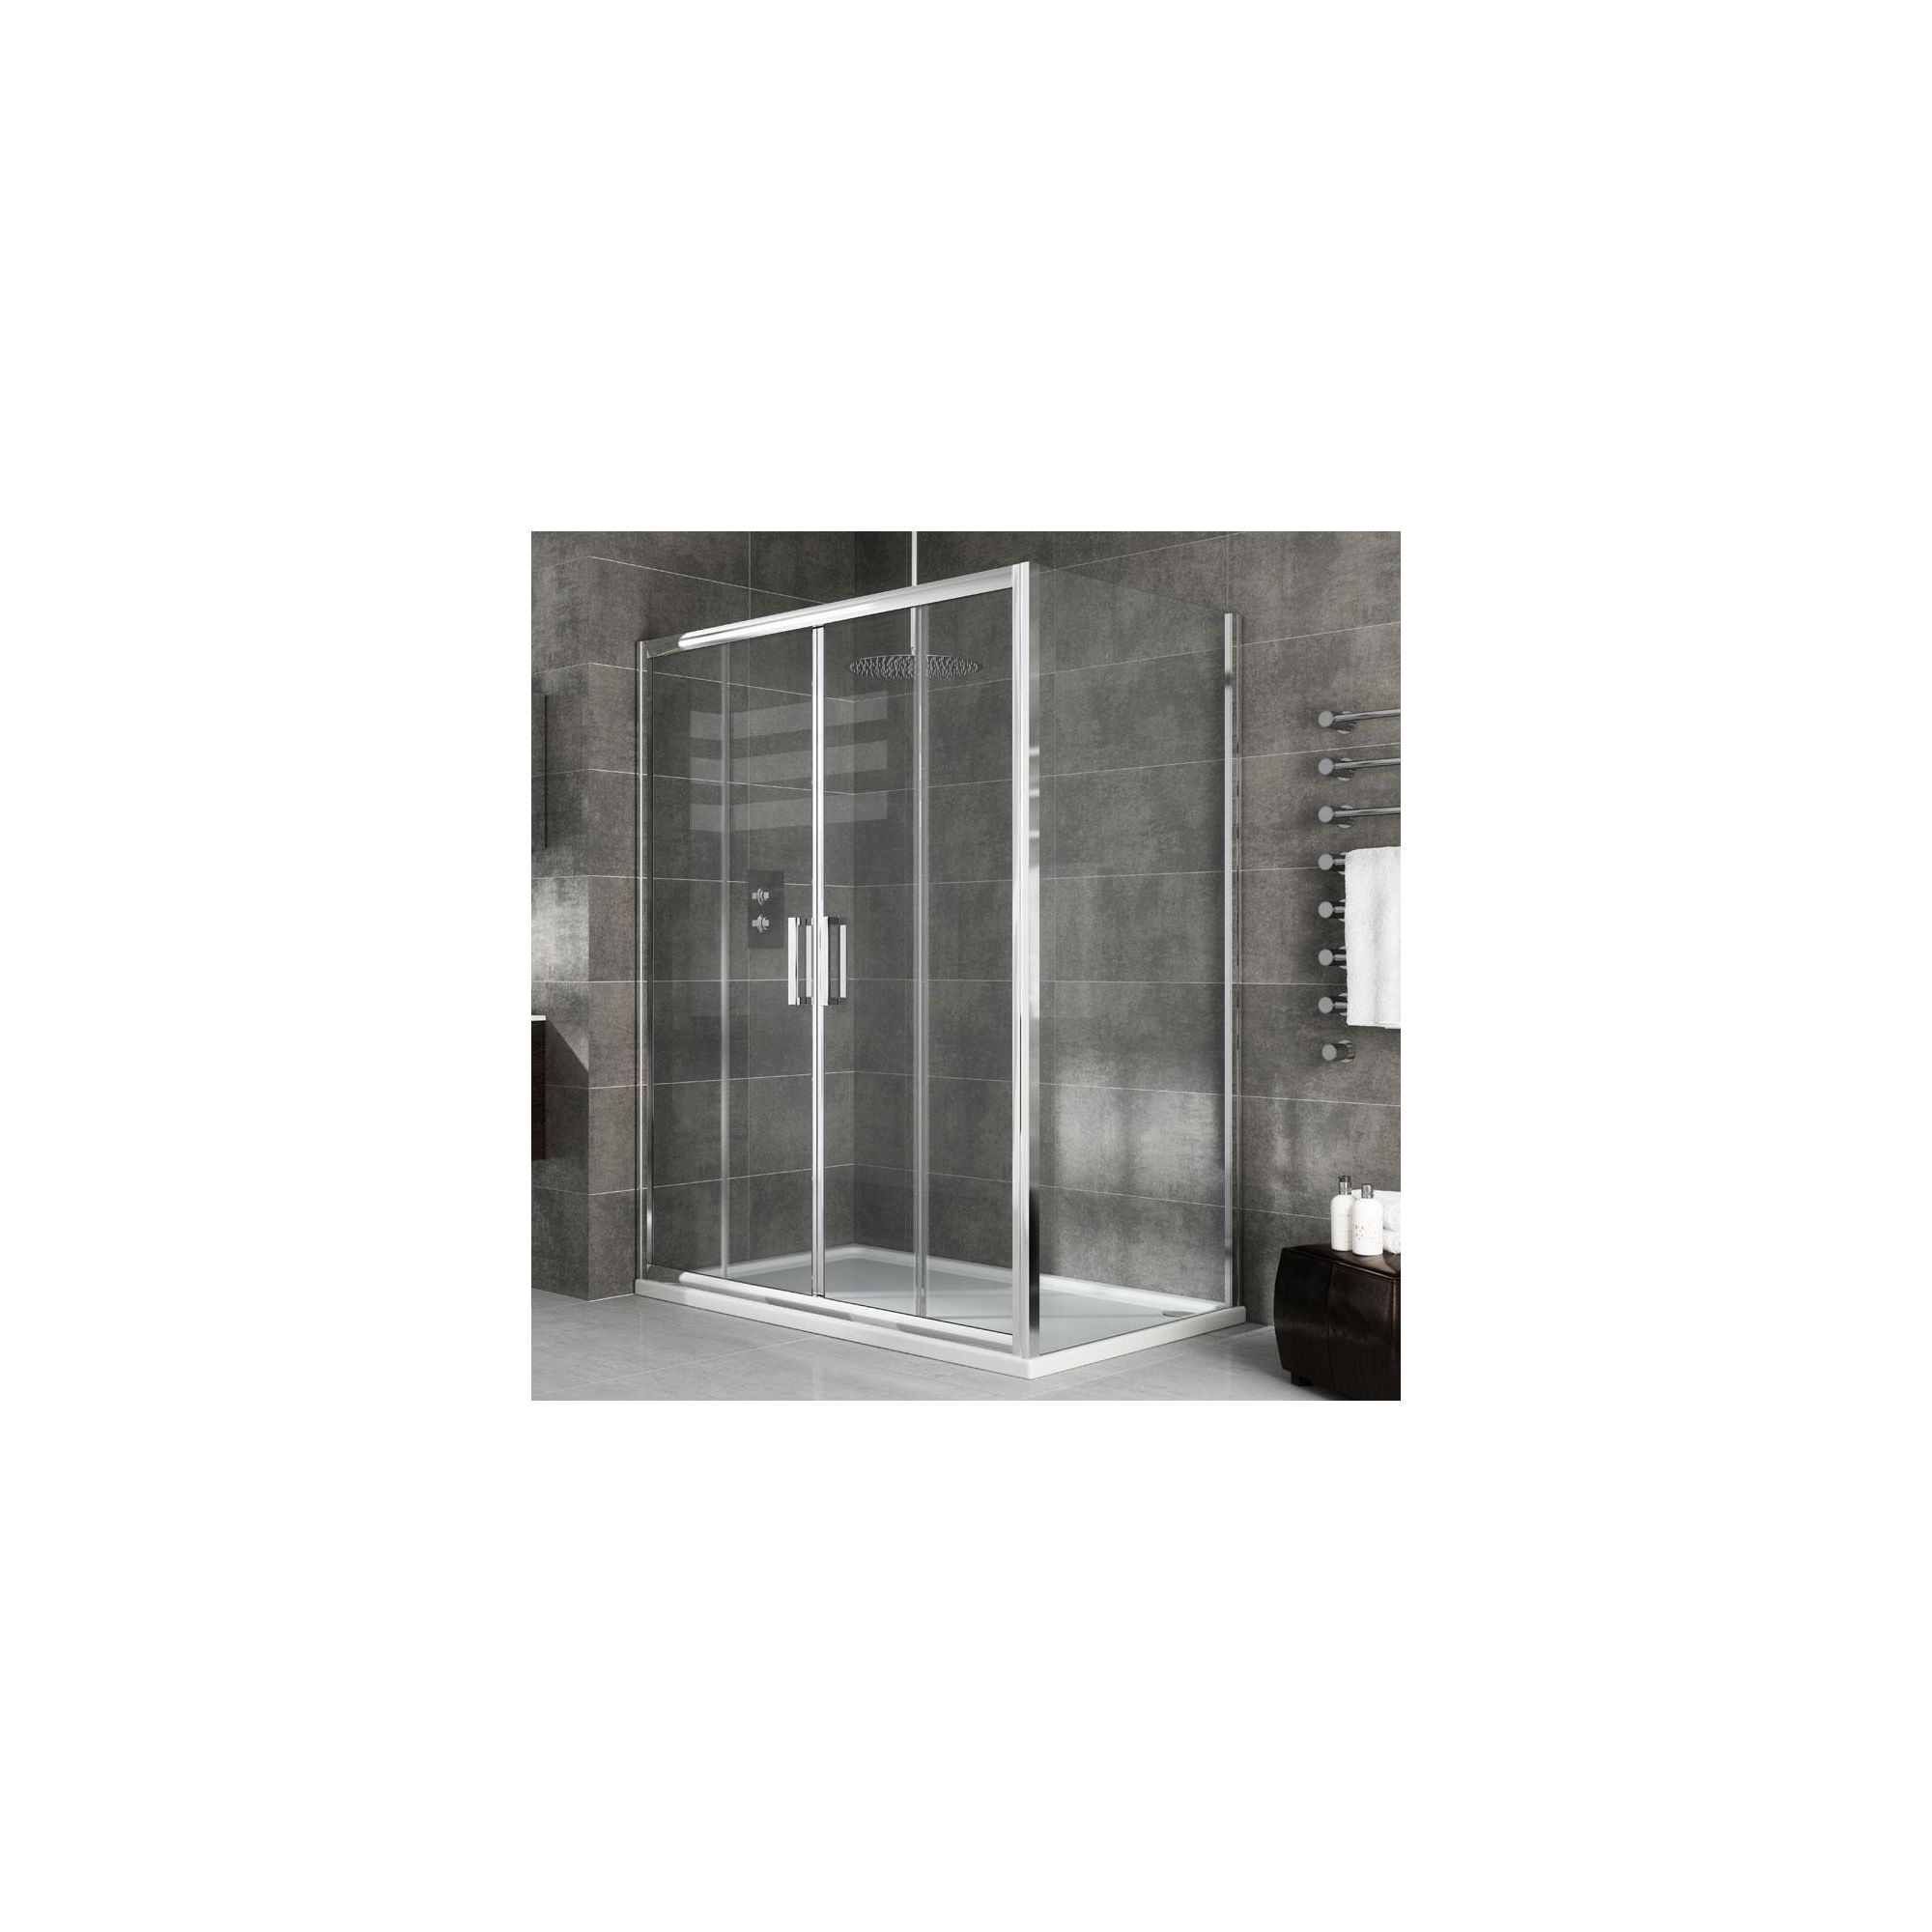 Elemis Eternity Two-Panel Jumbo Sliding Door Shower Enclosure, 1200mm x 900mm, 8mm Glass, Low Profile Tray at Tesco Direct